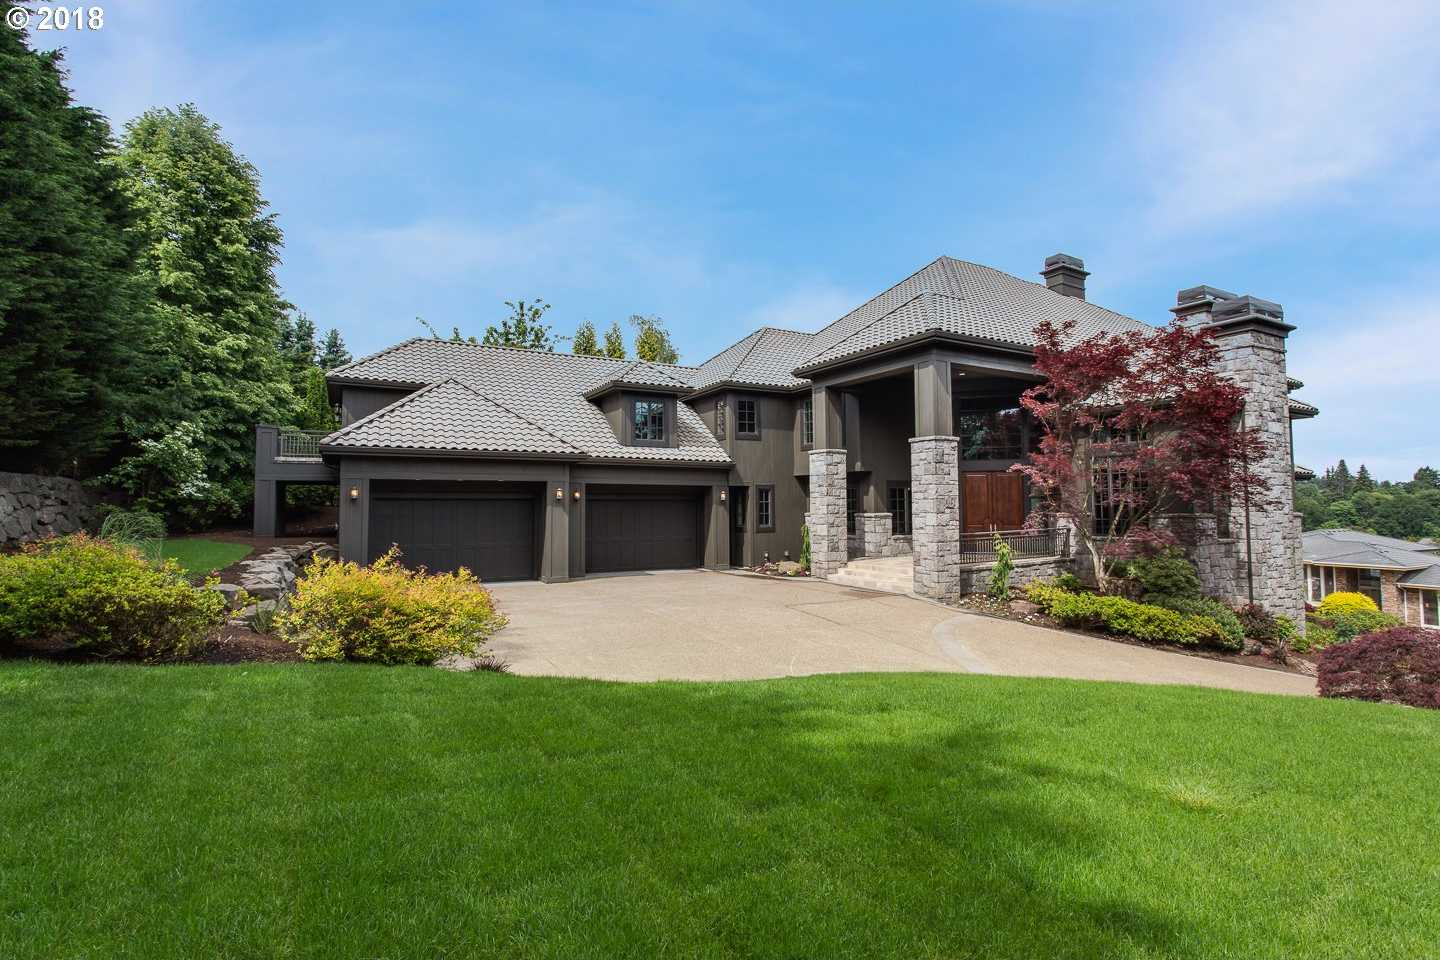 $3,495,000 - 5Br/10Ba -  for Sale in West Linn